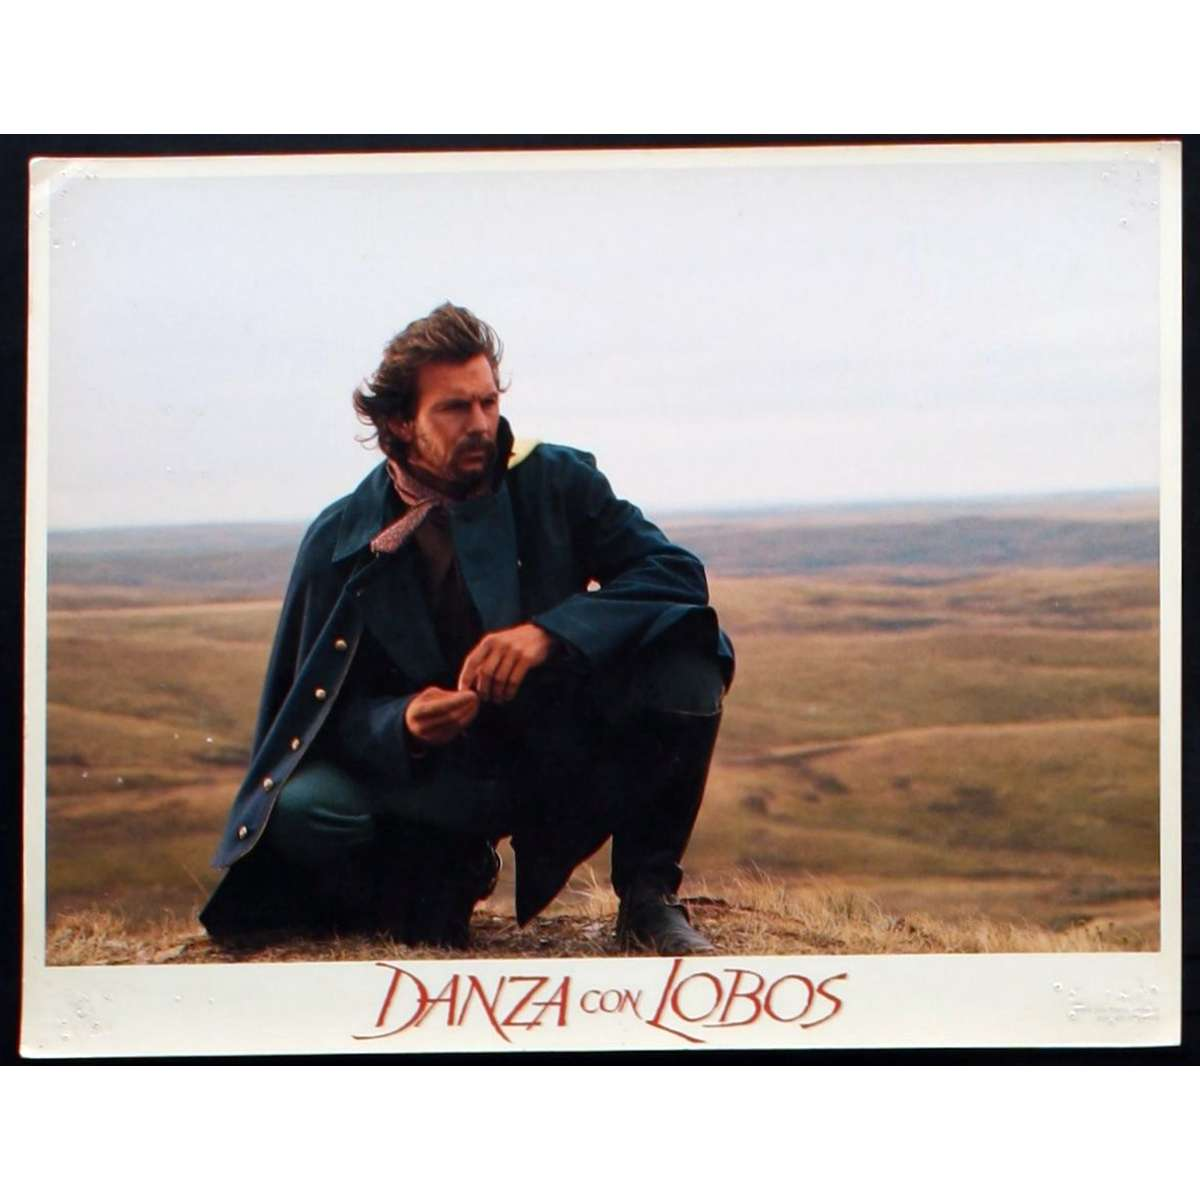 a report on dances with wolves a film by kevin costnar Results 1 - 48 of 127  shop ebay for great deals on dances with wolves film discs  kevin costner  dances with wolves laser etched lp set japan  i recycle boxes/paper/plastic/ cardboard whenever possible, bubble wrap and peanuts are.